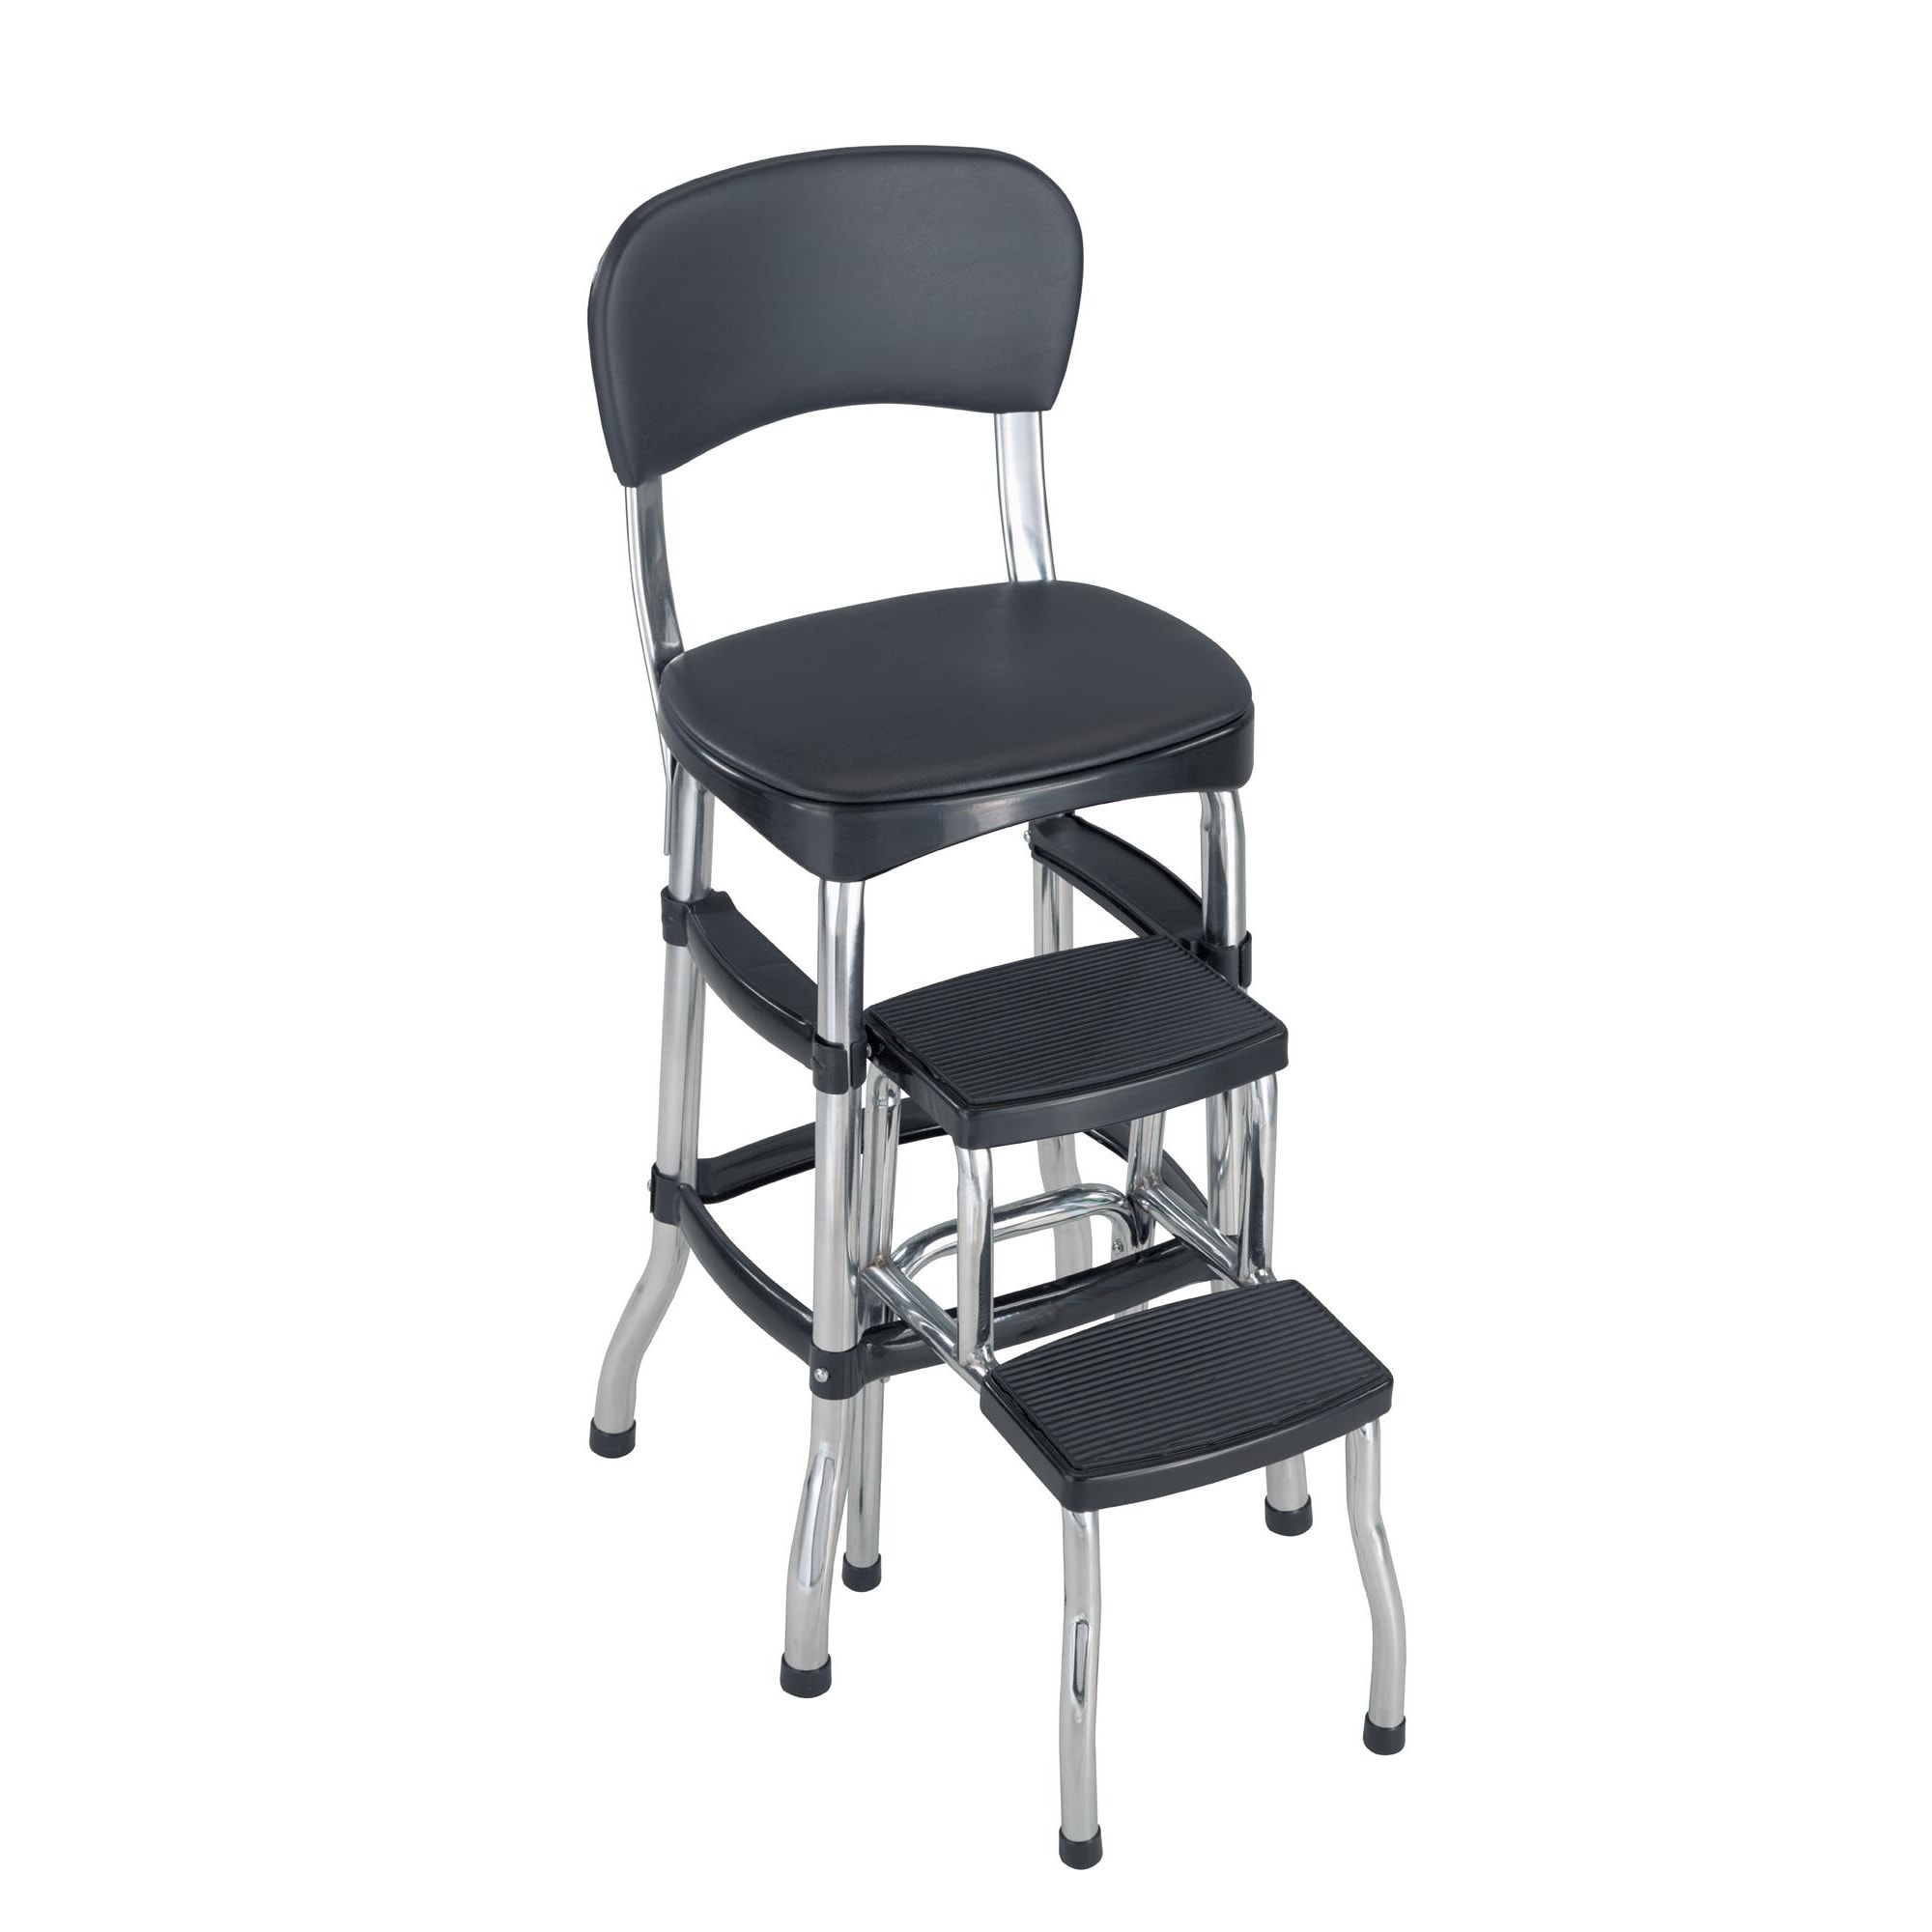 Cosco Retro Counter Chair / Step Stool - Free Shipping Today -  Overstock.com - 15388206